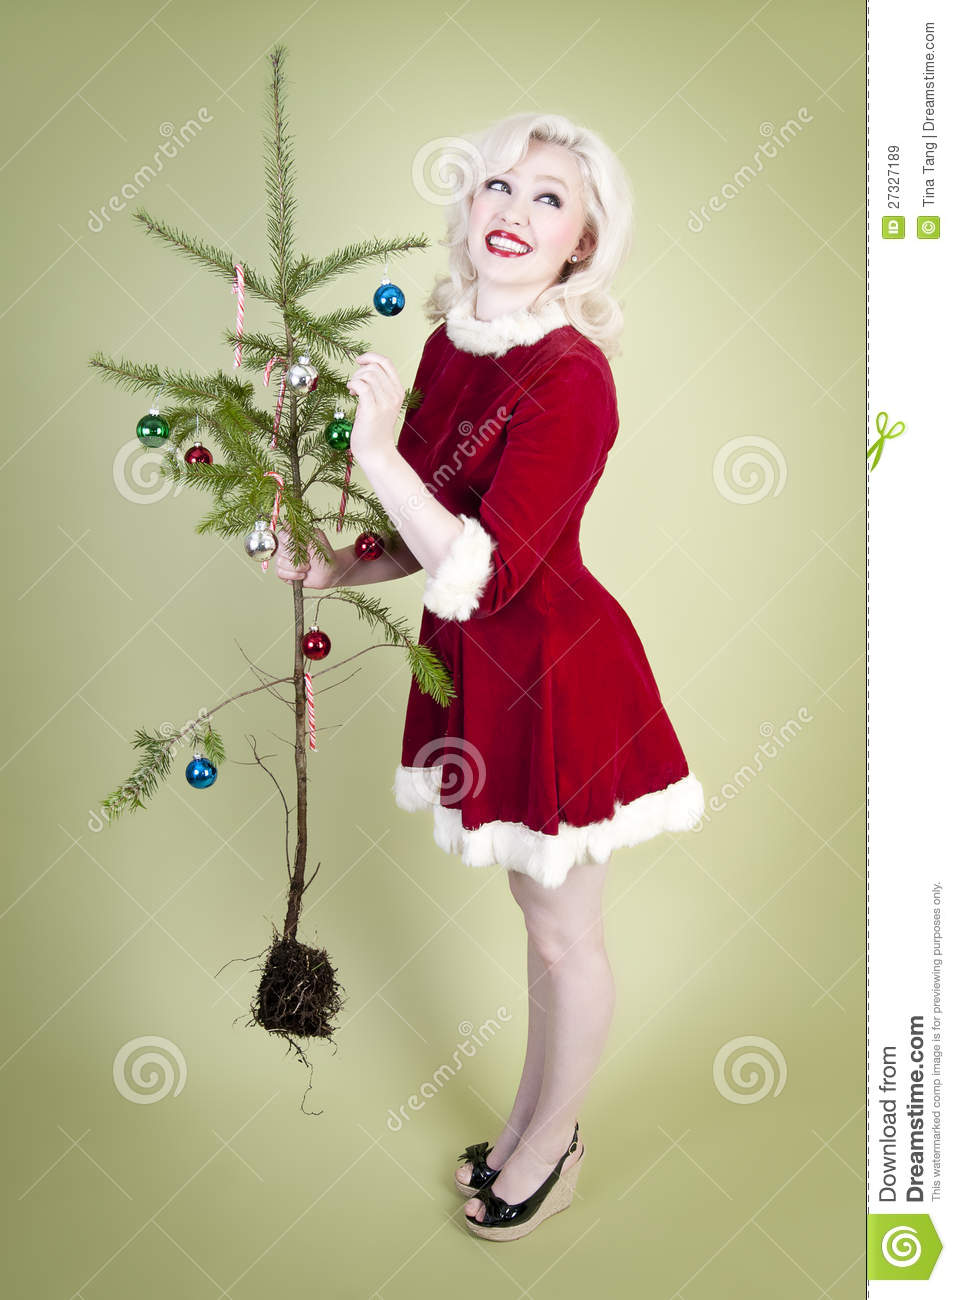 Christmas Pinup Girl Royalty Free Stock Images - Image: 27327189